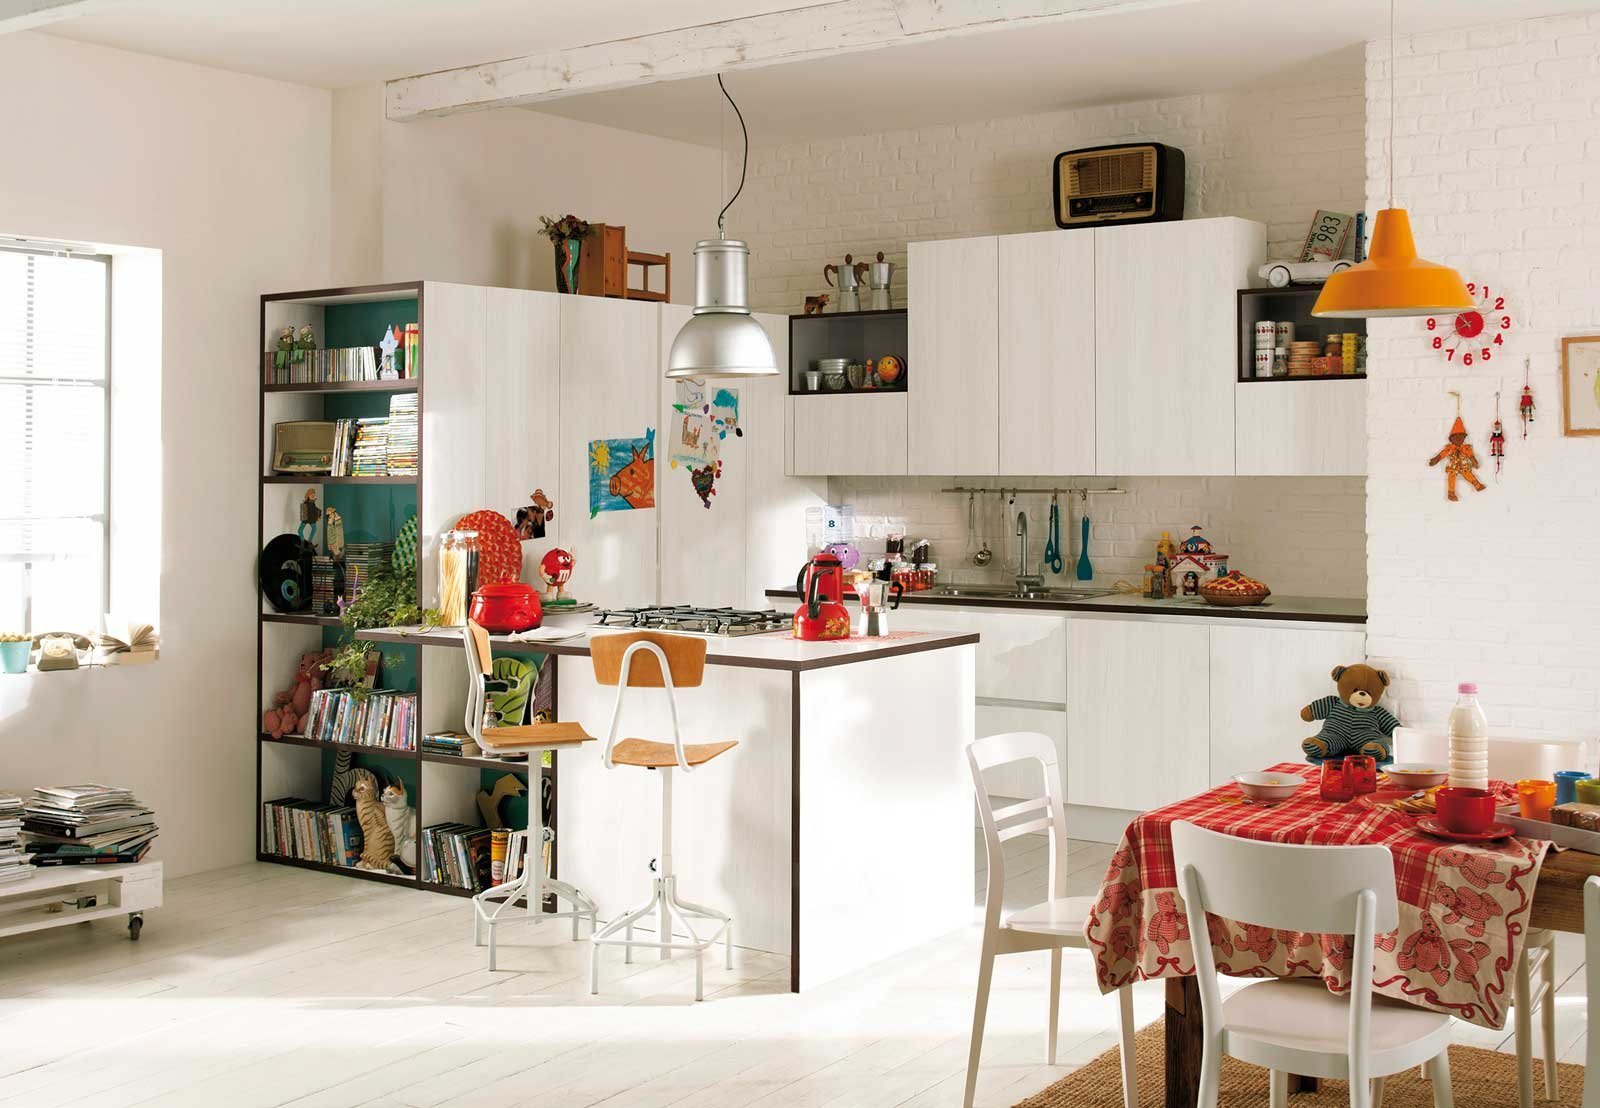 Cucine Record. Simple Cucine Moderne Con Gola With Cucine Record ...